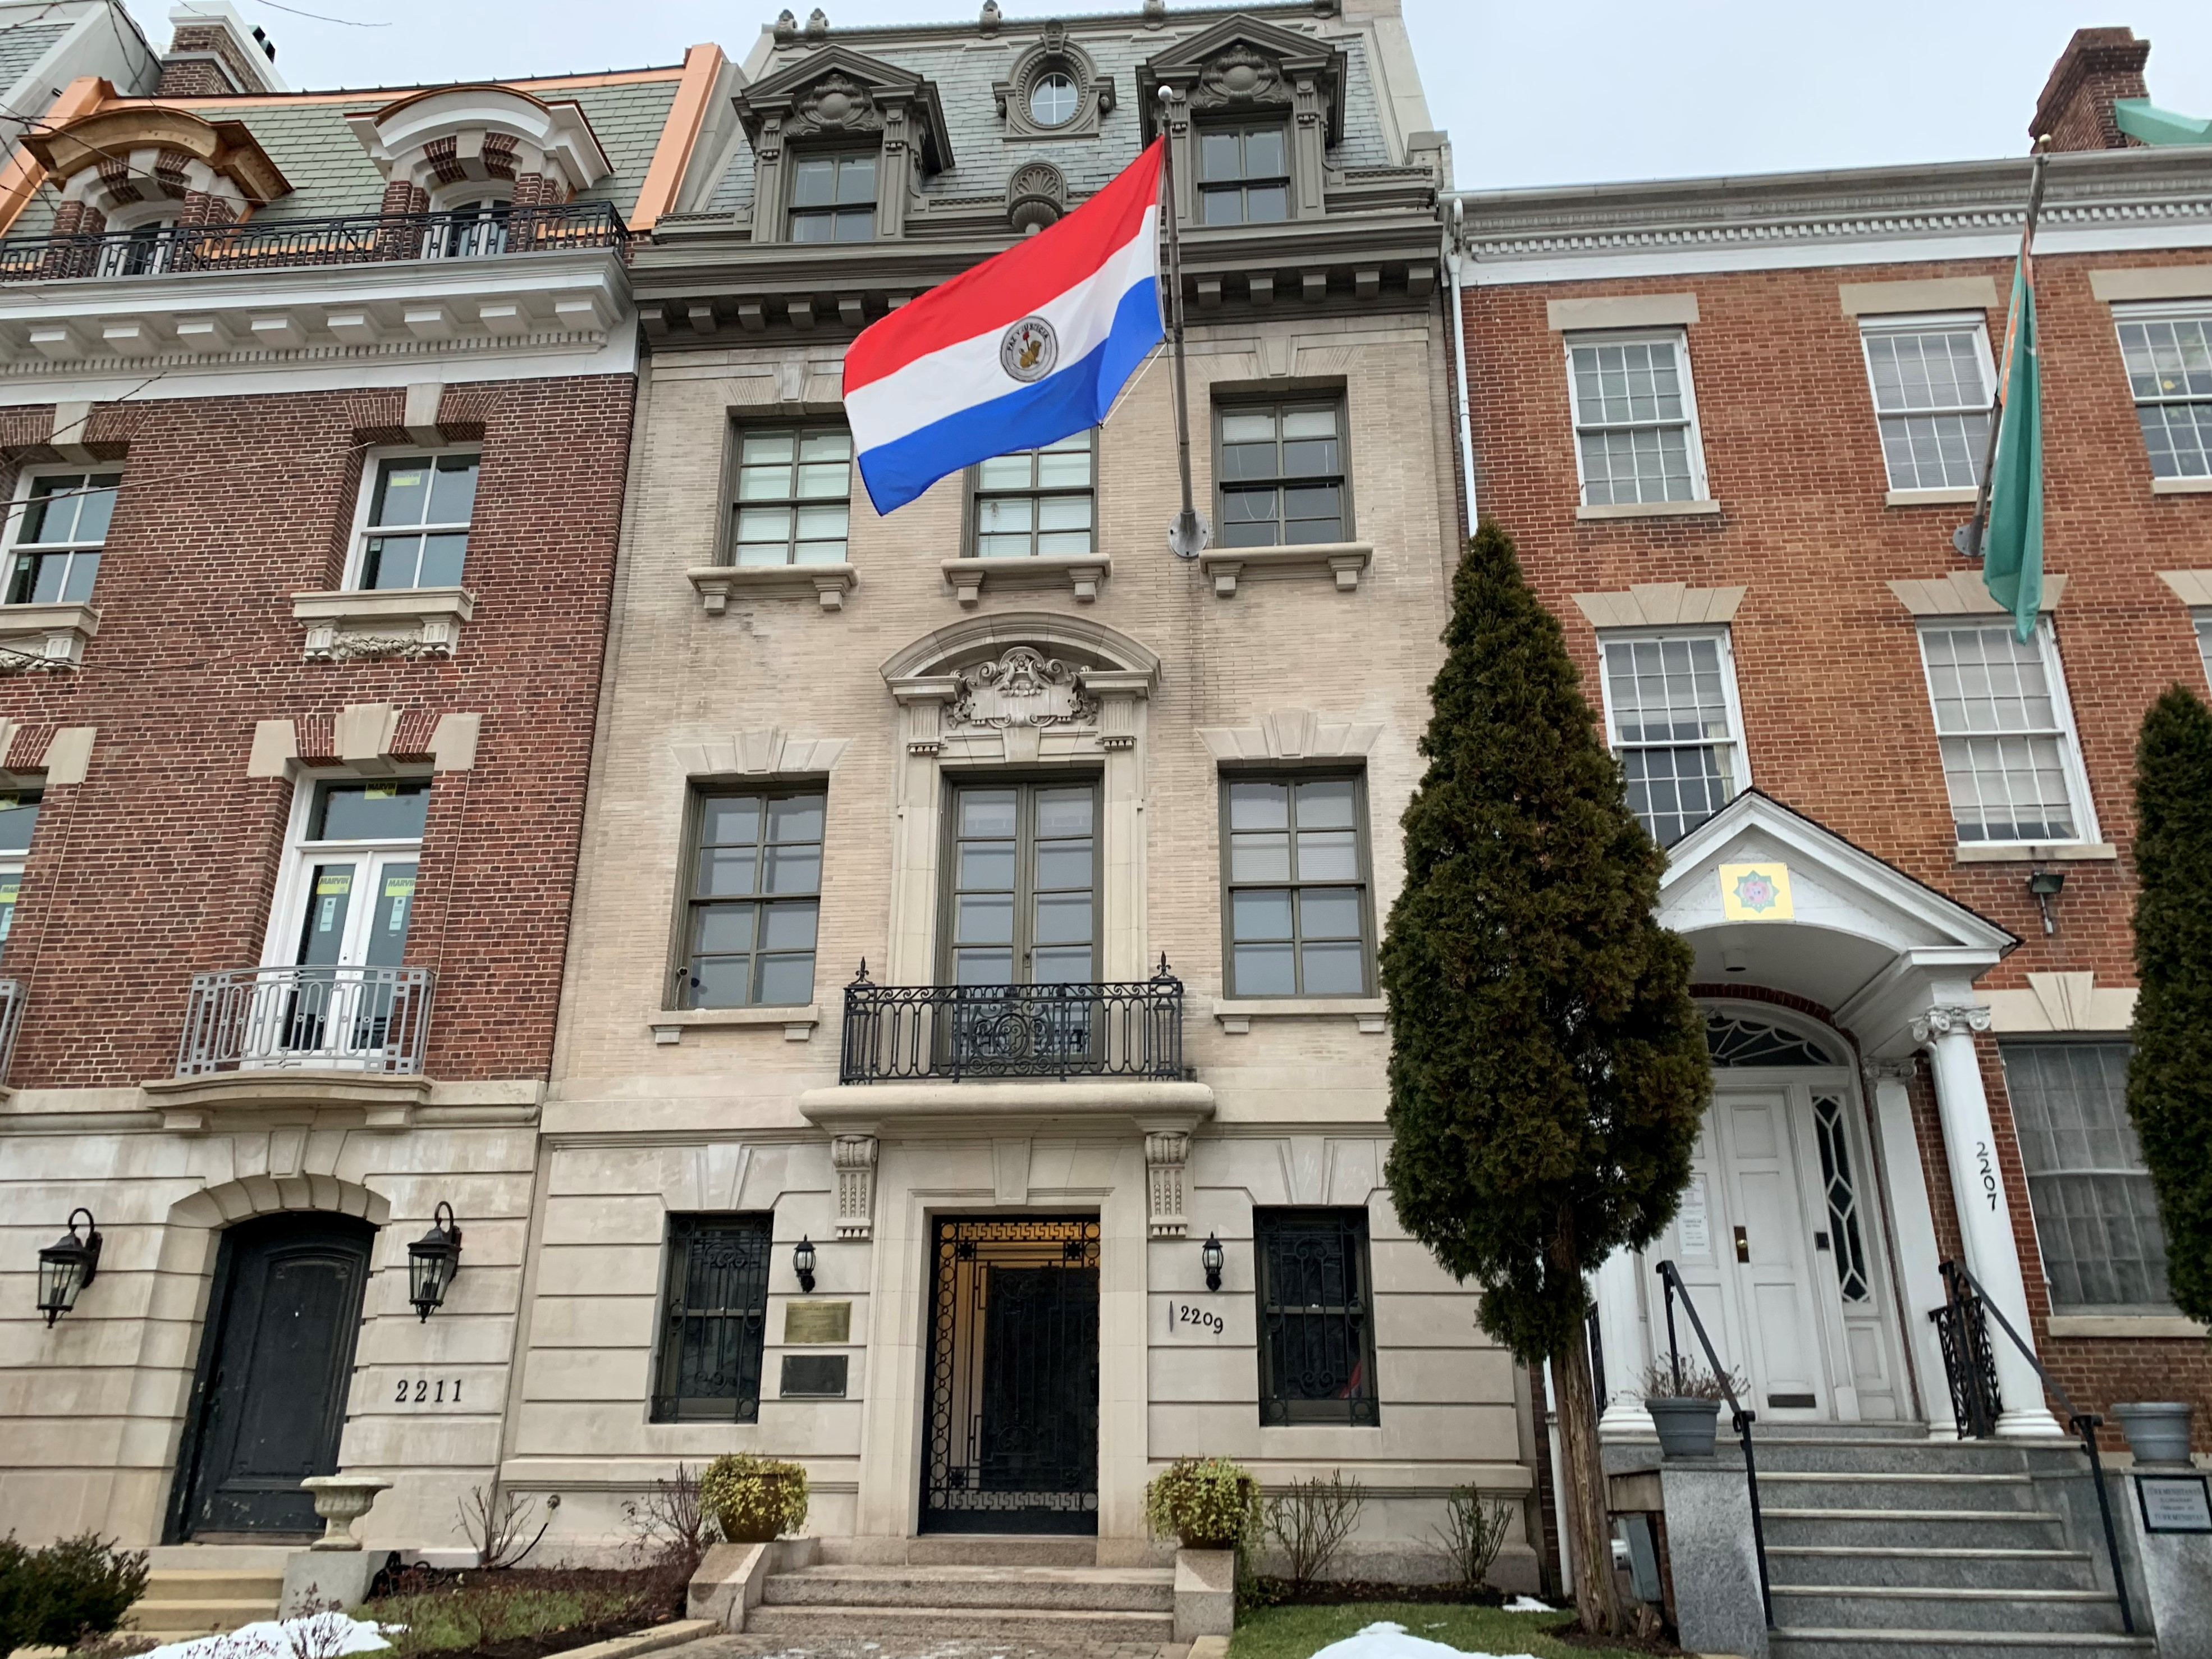 Real Estate & Homes For Sale Near The Embassy of Paraguay in Washington, DC. Artyom Shmatko Luxury Real Estate Agent